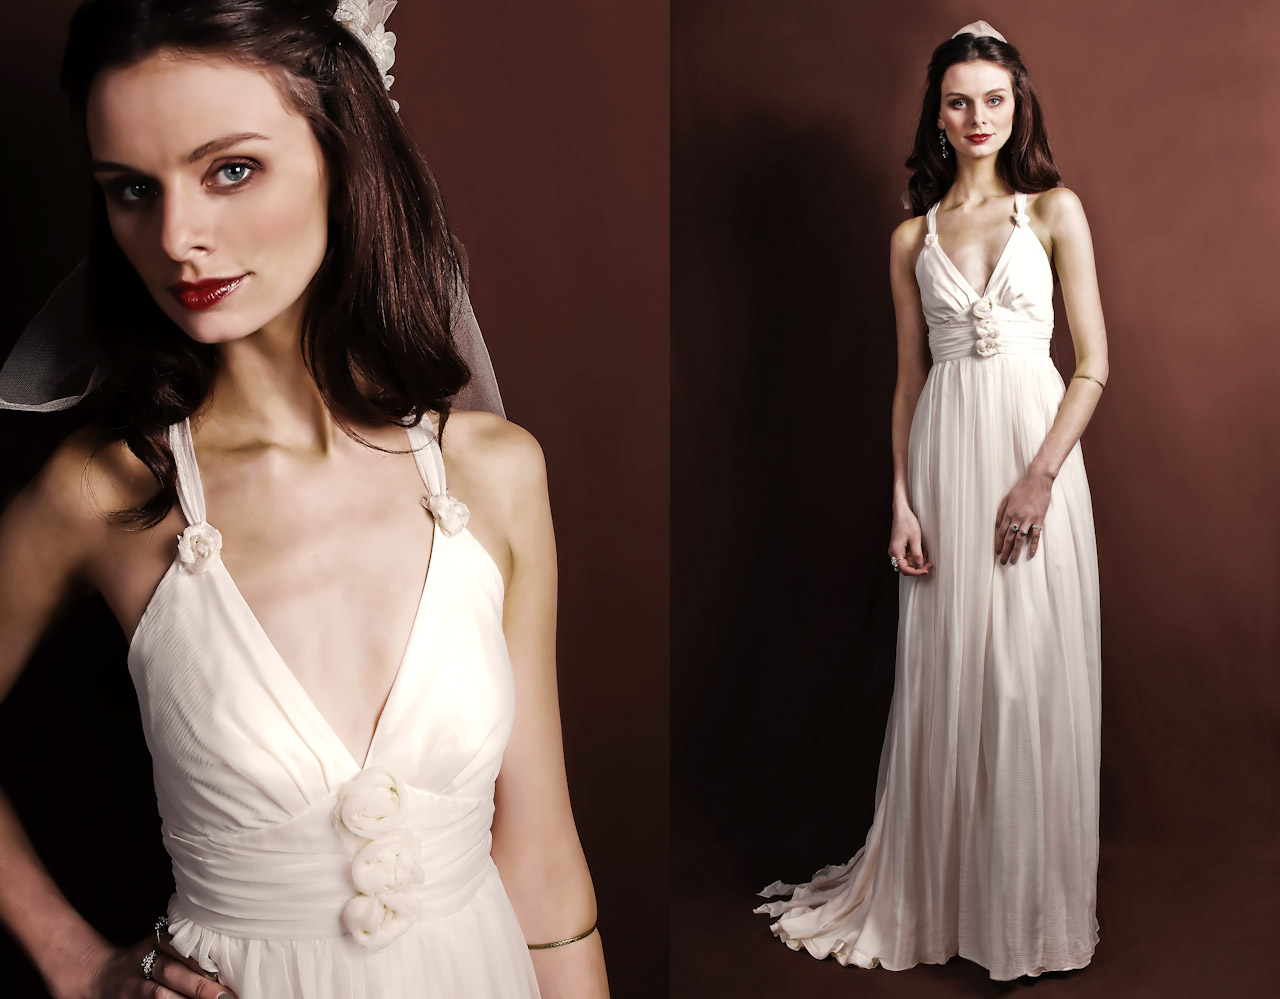 Belle-2011-white-wedding-dress-v-neck-romantic-bridal-gowns.original